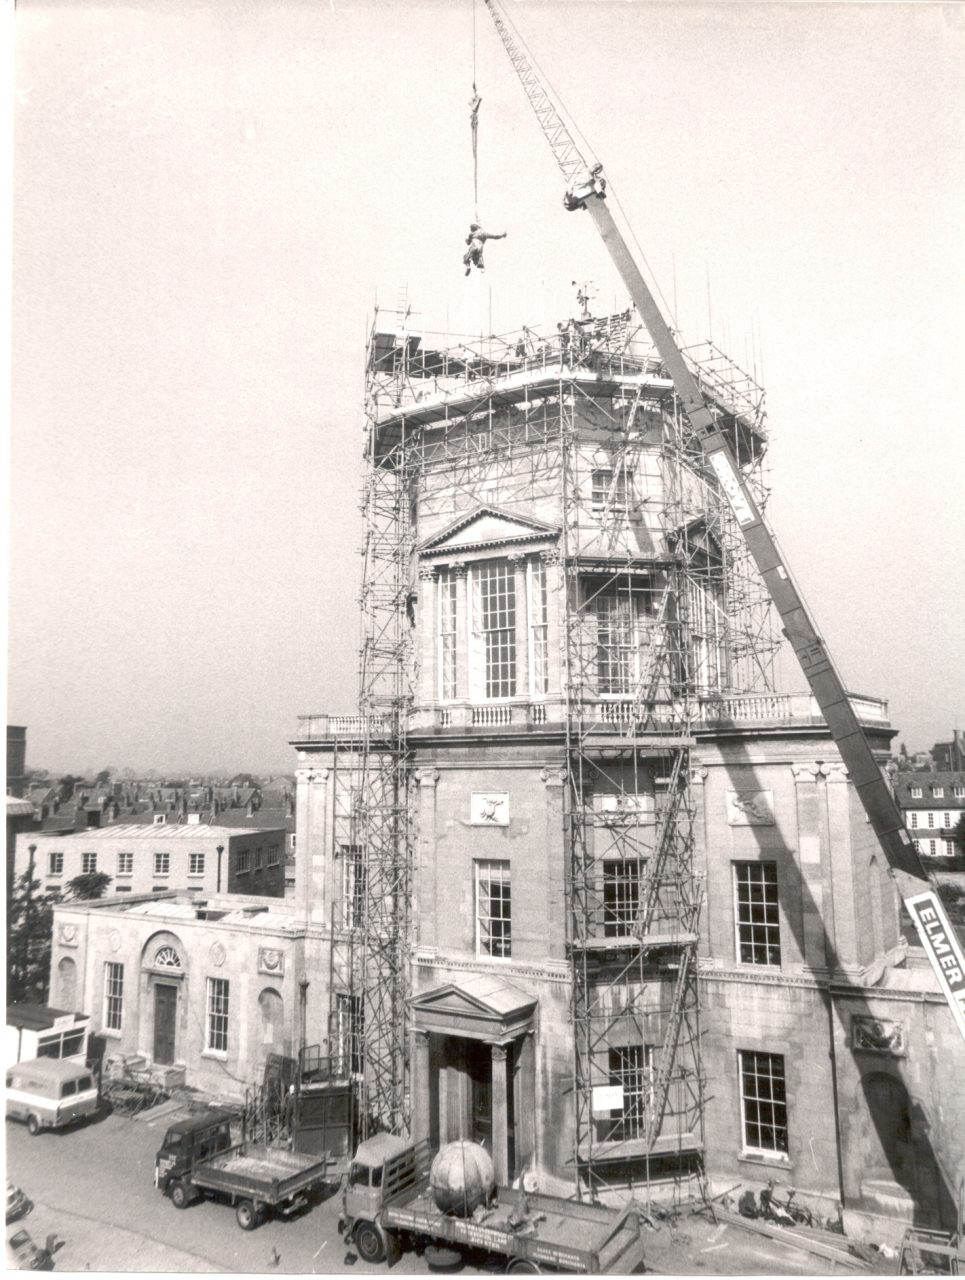 Work Happening on Observatory in 1978